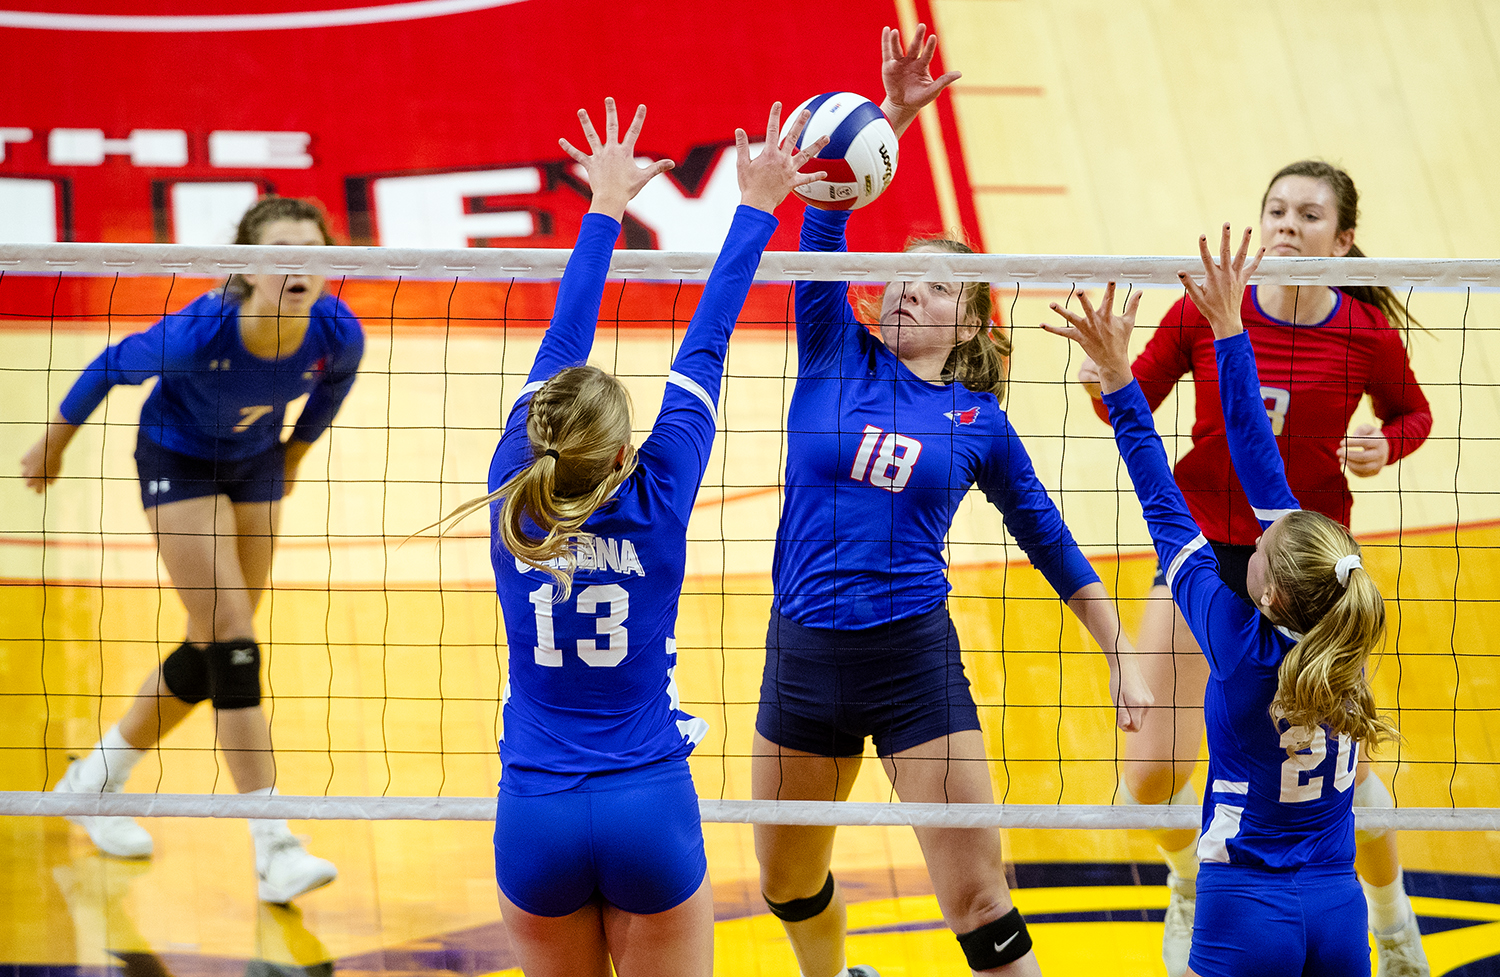 Pleasant Plains' Anna Kanllakan spikes the ball against Galena during the IHSA Class 2A Volleyball championship at Redbird Arena in Normal Saturday, Nov. 10, 2018. [Ted Schurter/The State Journal-Register]